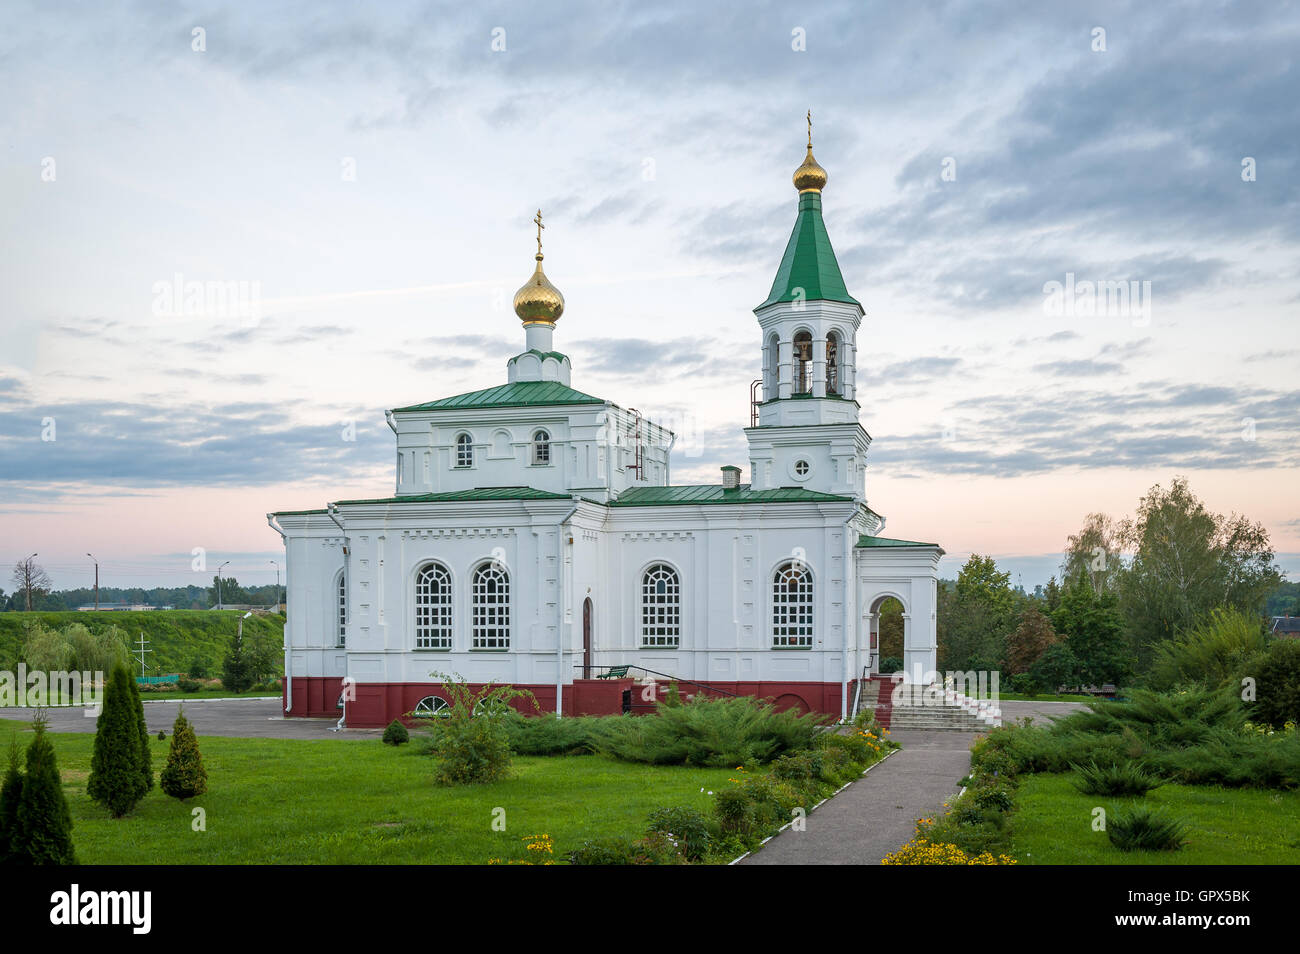 Pokrovskaya old church in Polotsk, Belarus Stock Photo